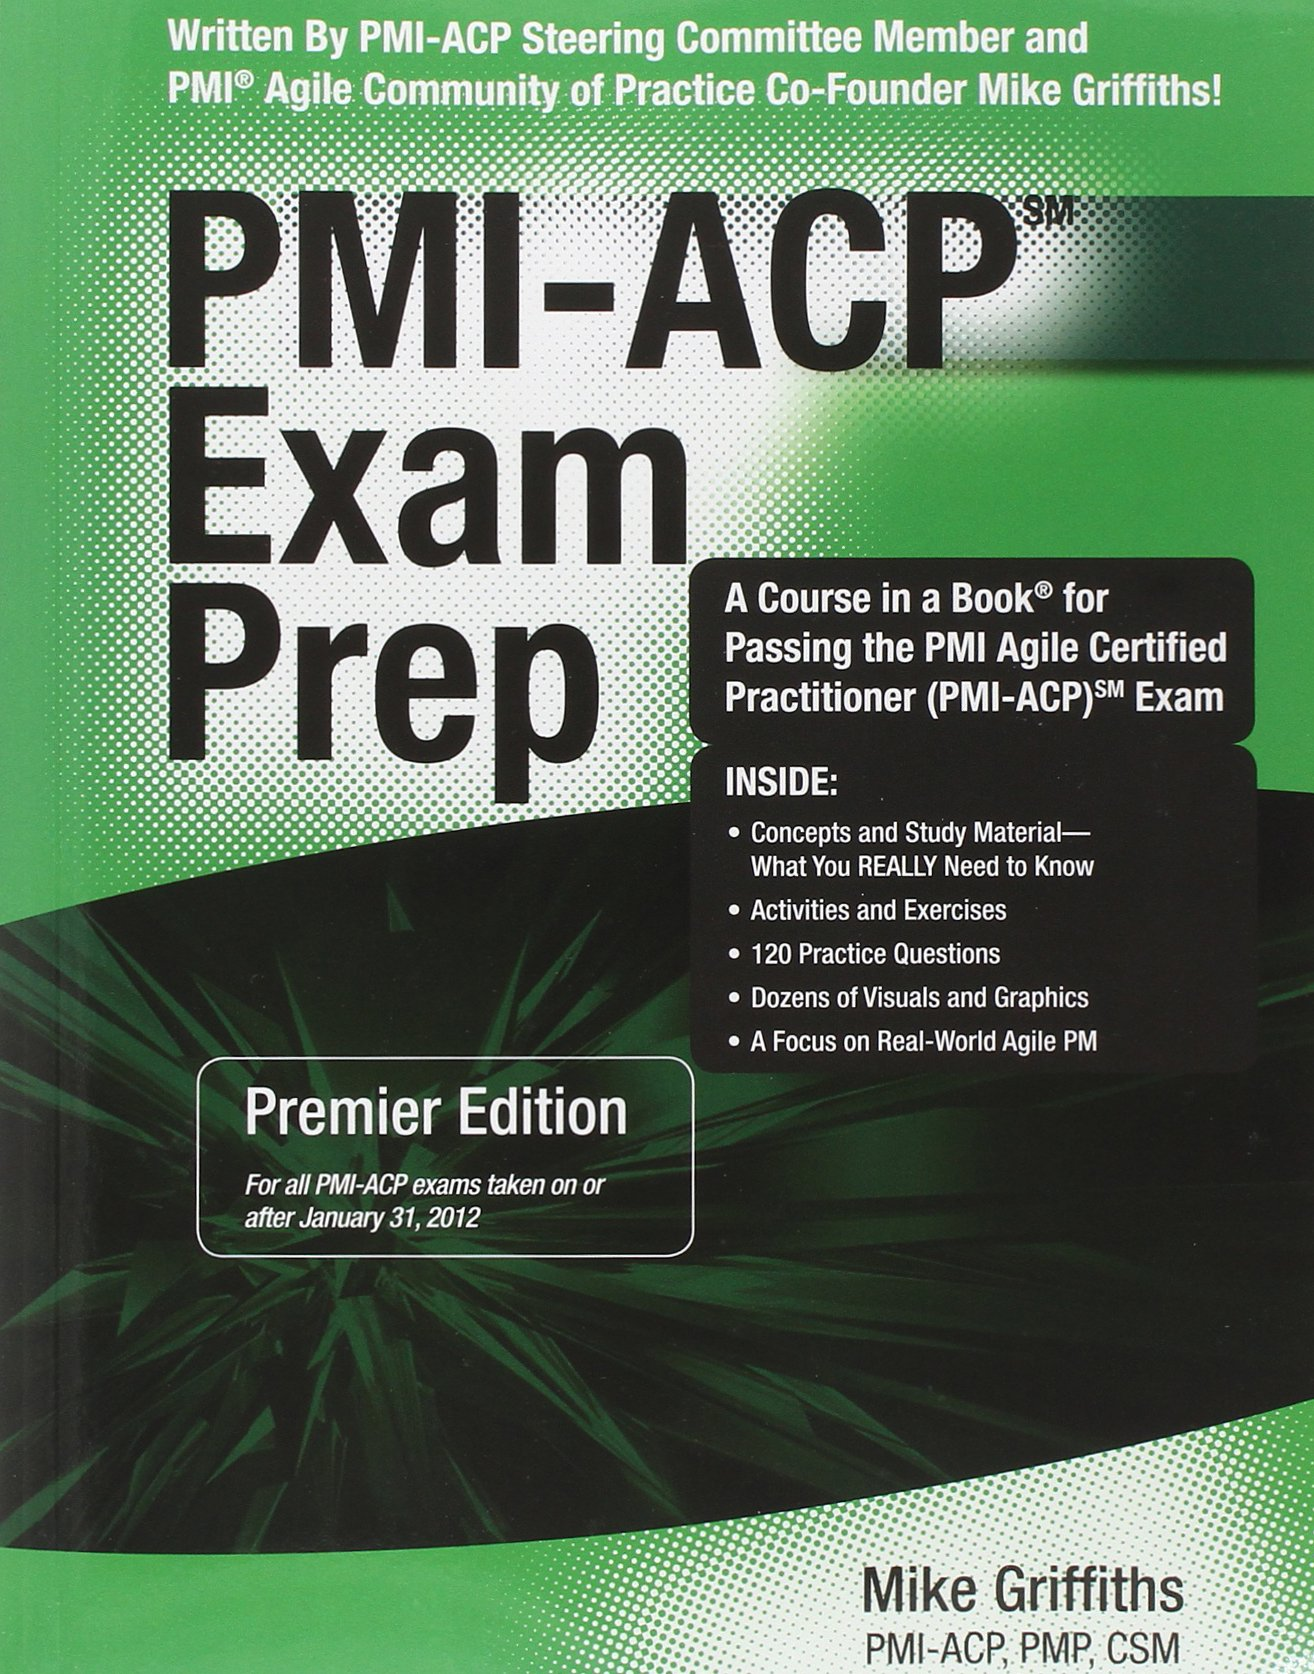 Pmi acp exam prep premier edition a course in a book for passing pmi acp exam prep premier edition a course in a book for passing the pmi agile certified practitioner pmi acp exam mike griffiths pmi acp pmp csm xflitez Images